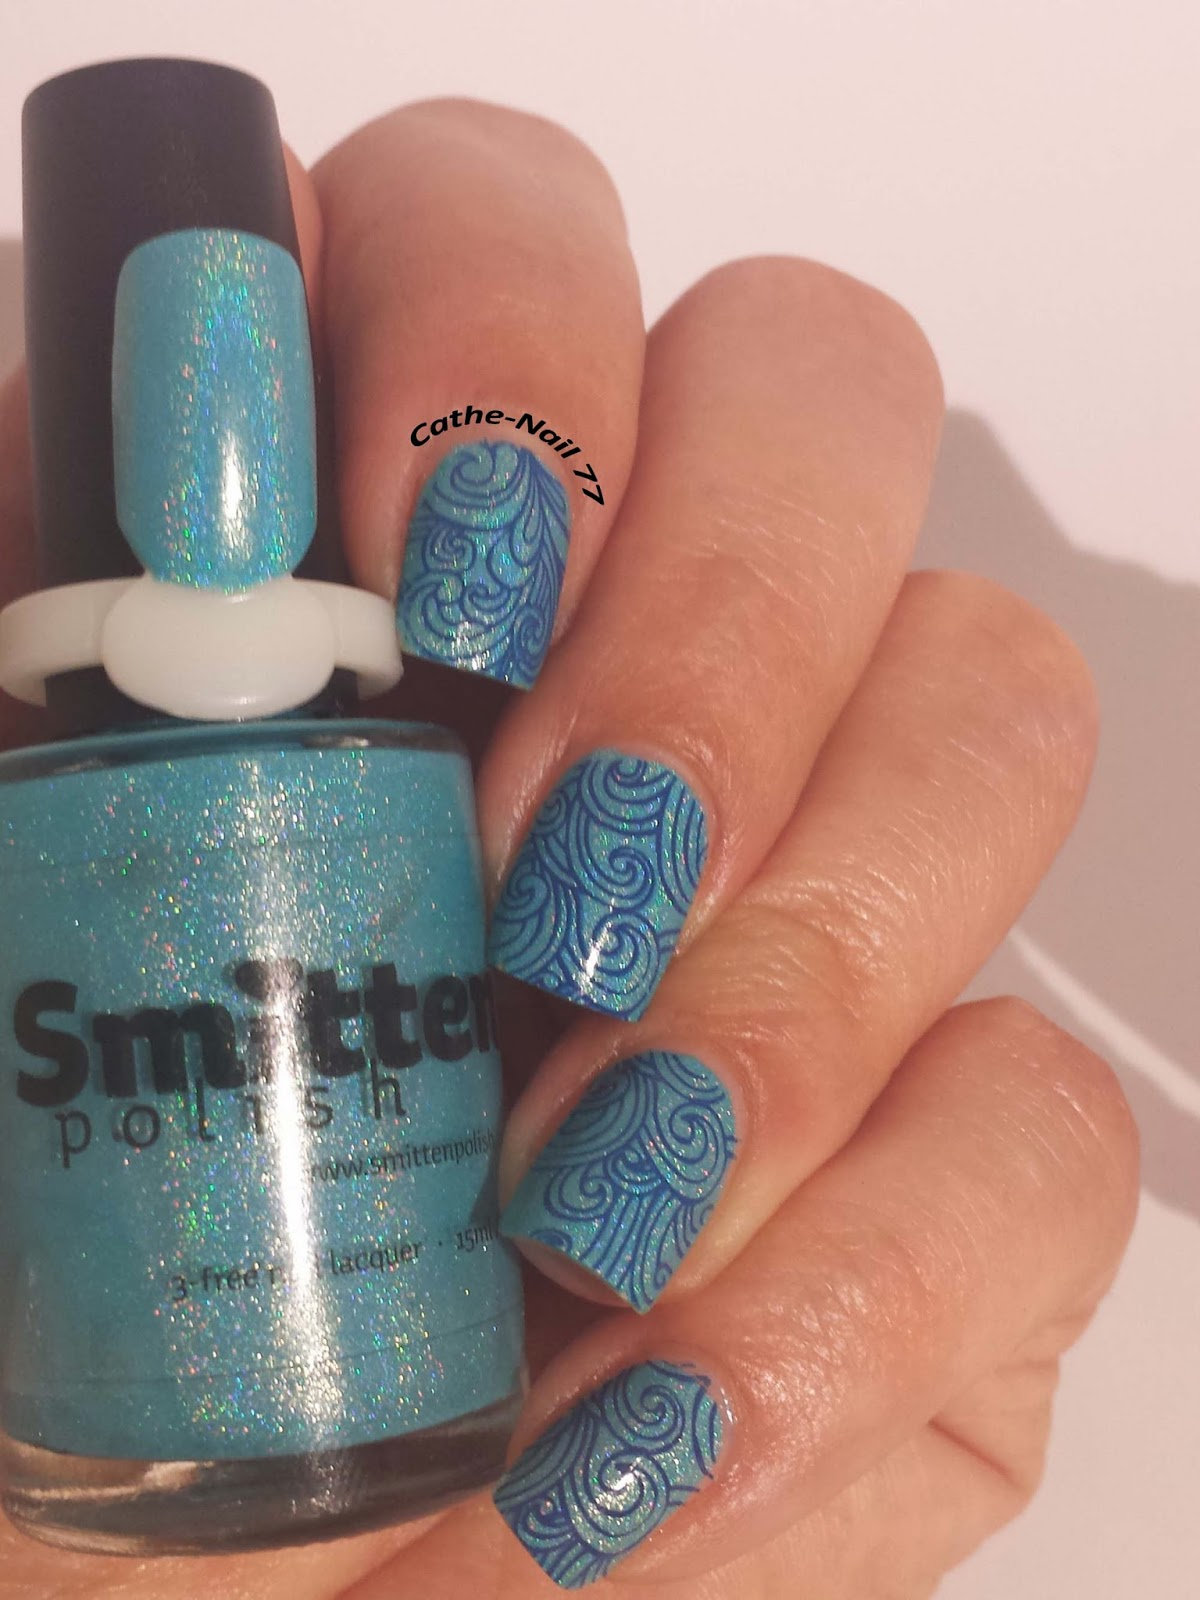 http://cathenail.blogspot.fr/2014/08/smitten-polish-himalayan-blue-poppy-1.html